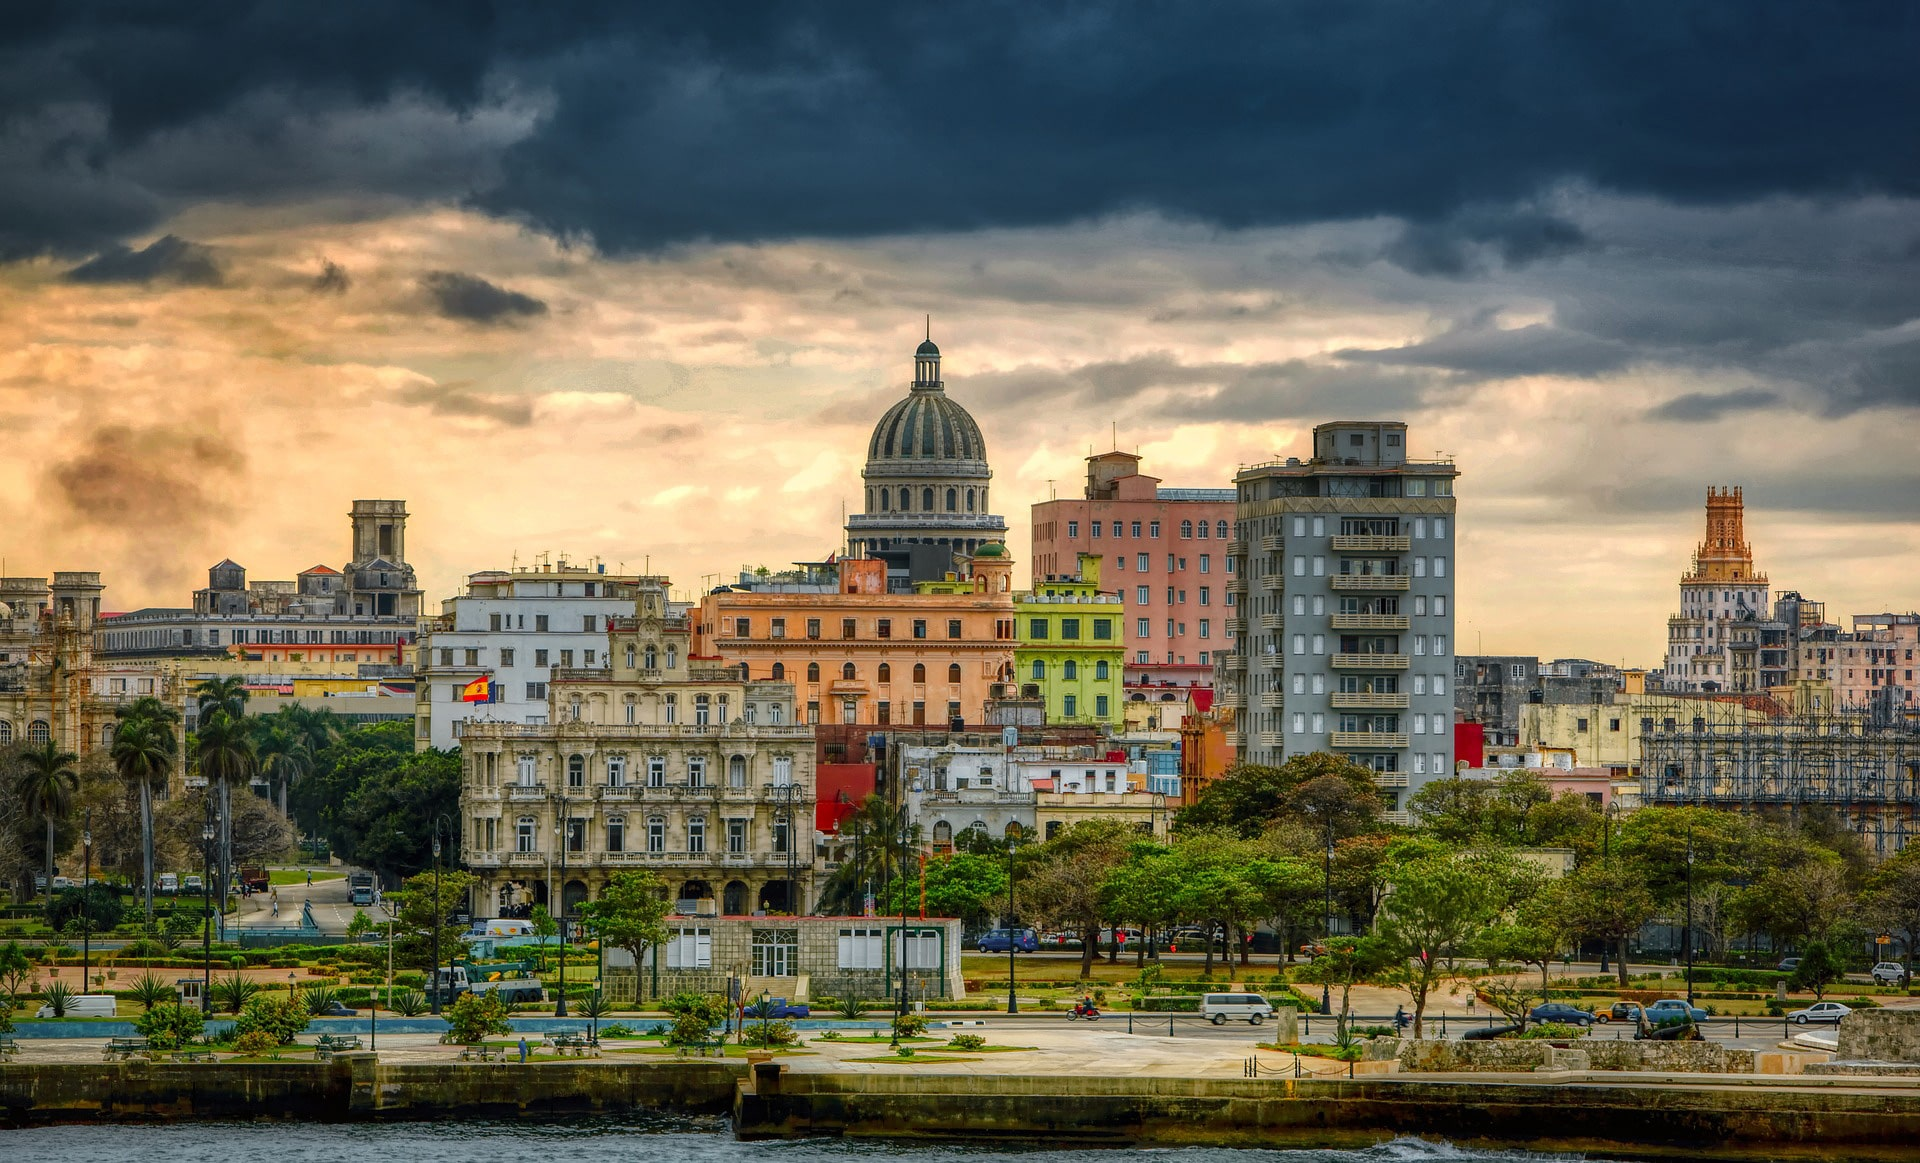 Havana, a city of paradox